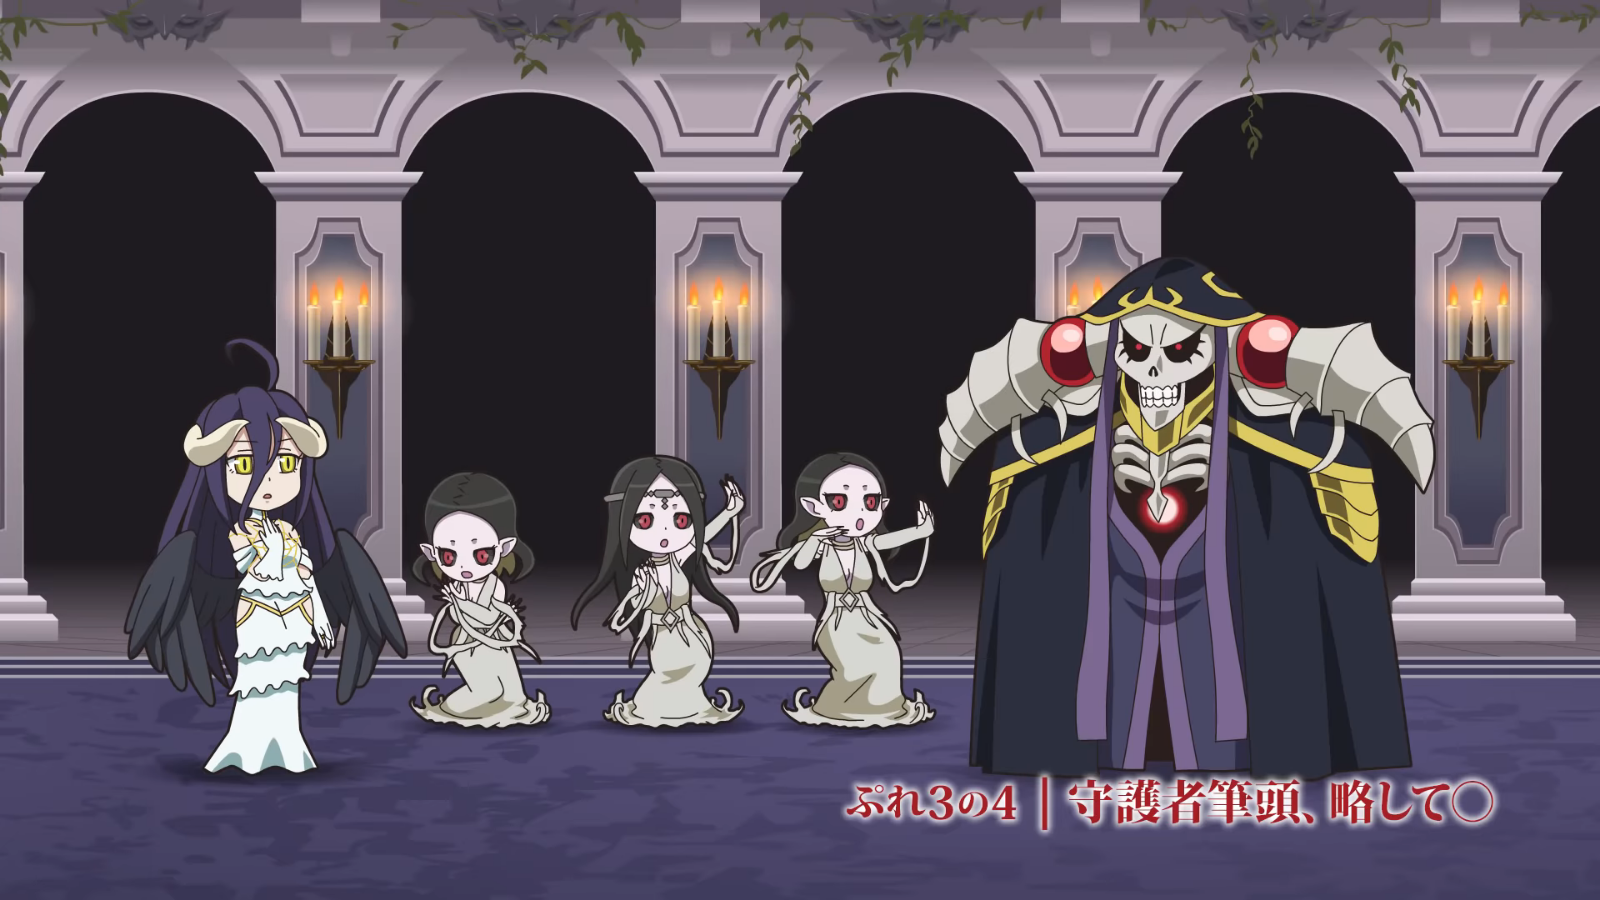 Pure Pure Pleiades 3 Episode 04 | Overlord Wiki | FANDOM powered by